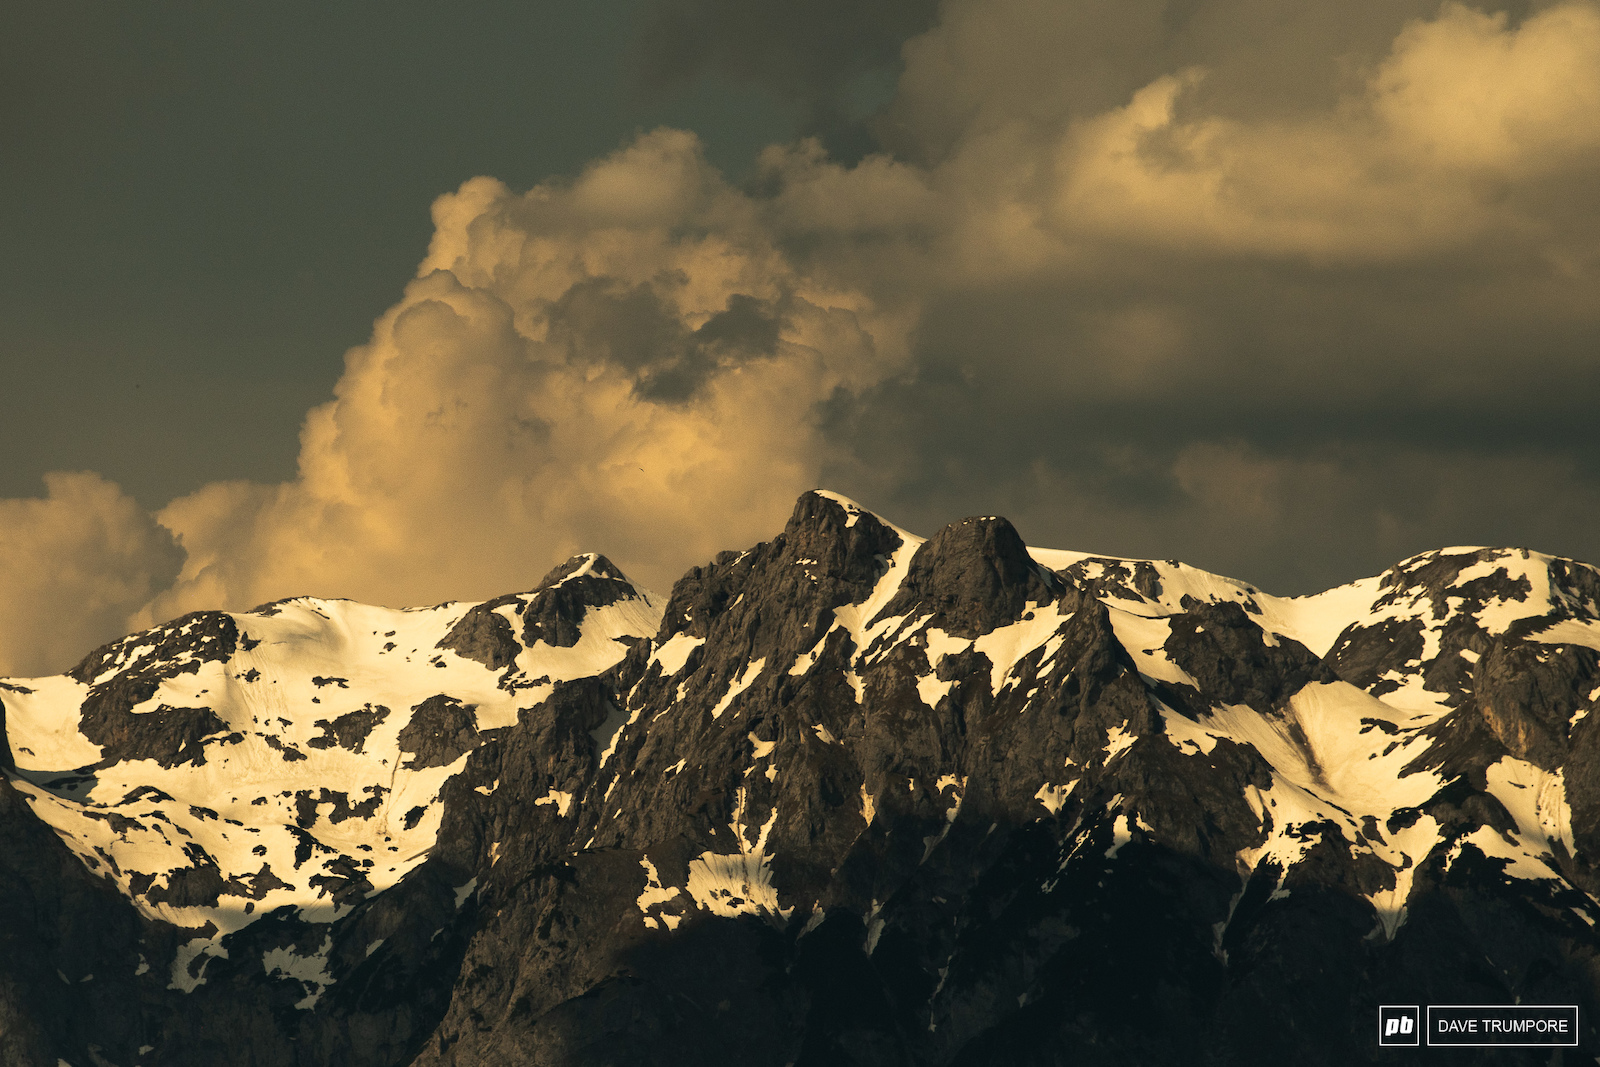 After the storms roll through the evening light in the mountains is hard to beat.